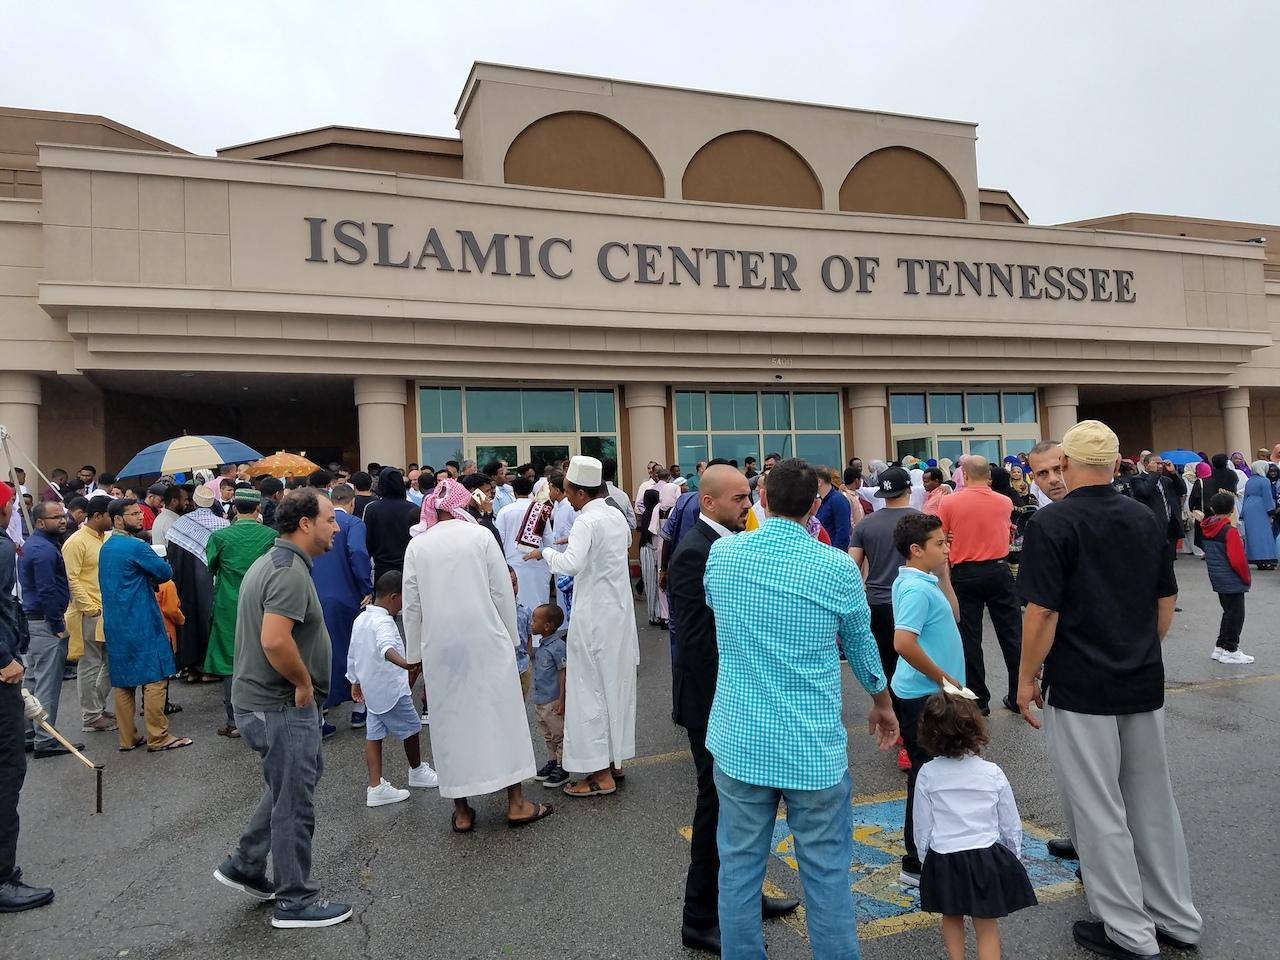 Curious Nashville: Meet The Leader Of Tennessee's Biggest Mosque